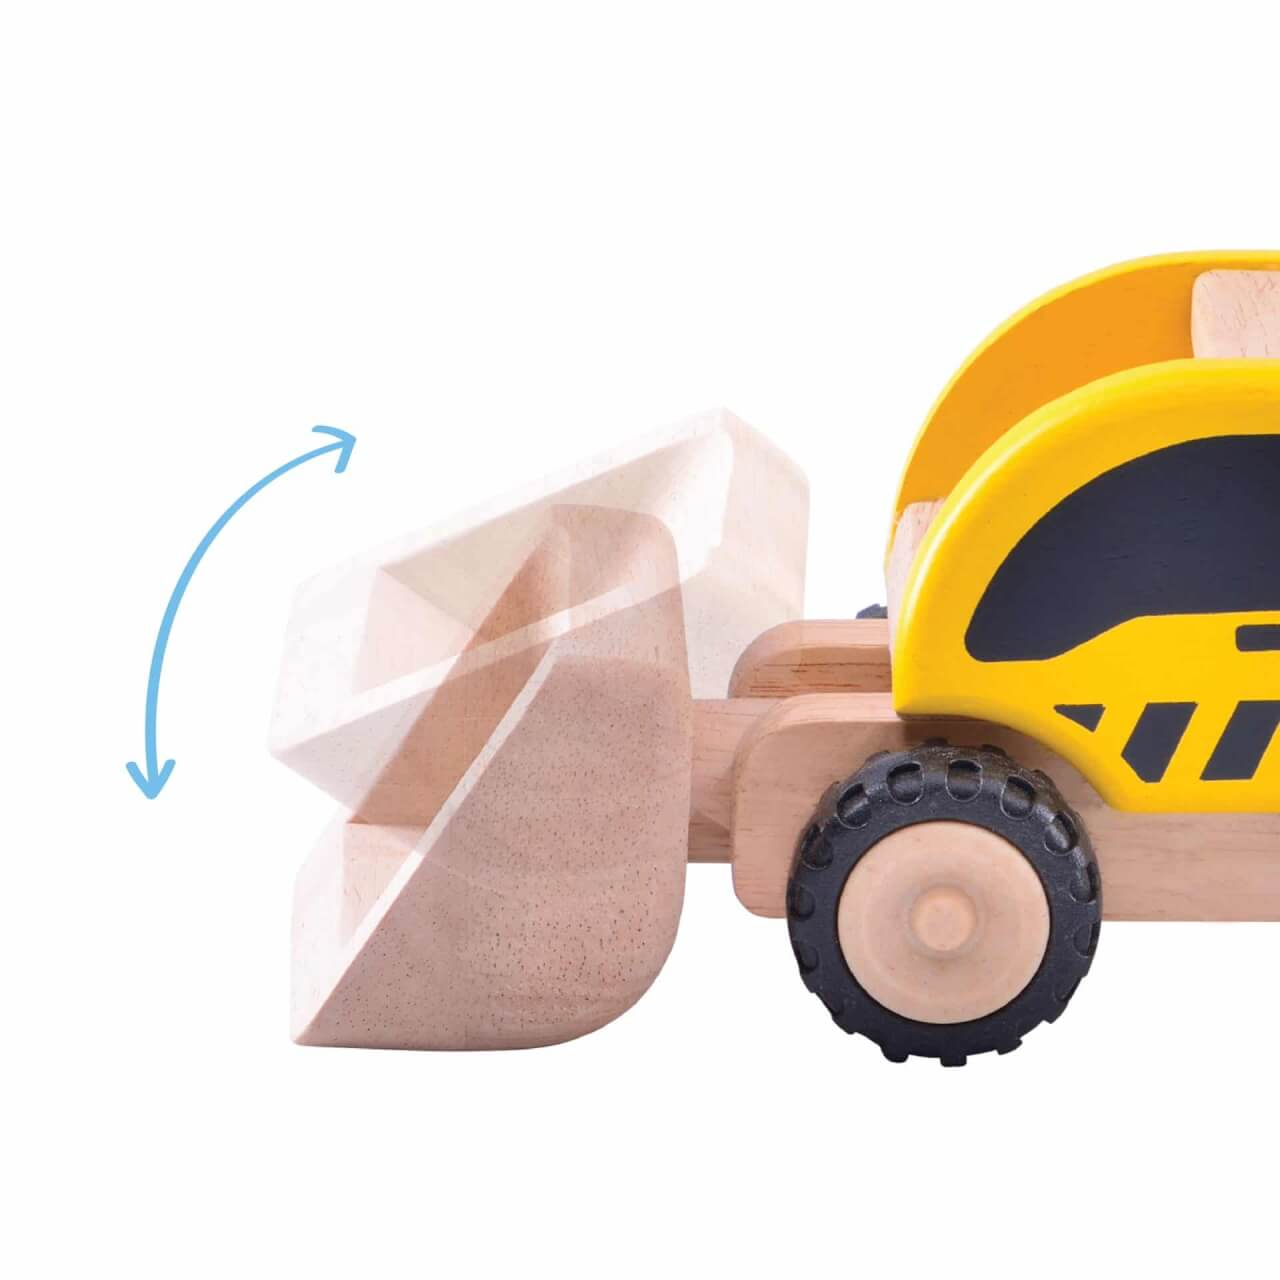 5-inch wooden front-end loader for imaginative play